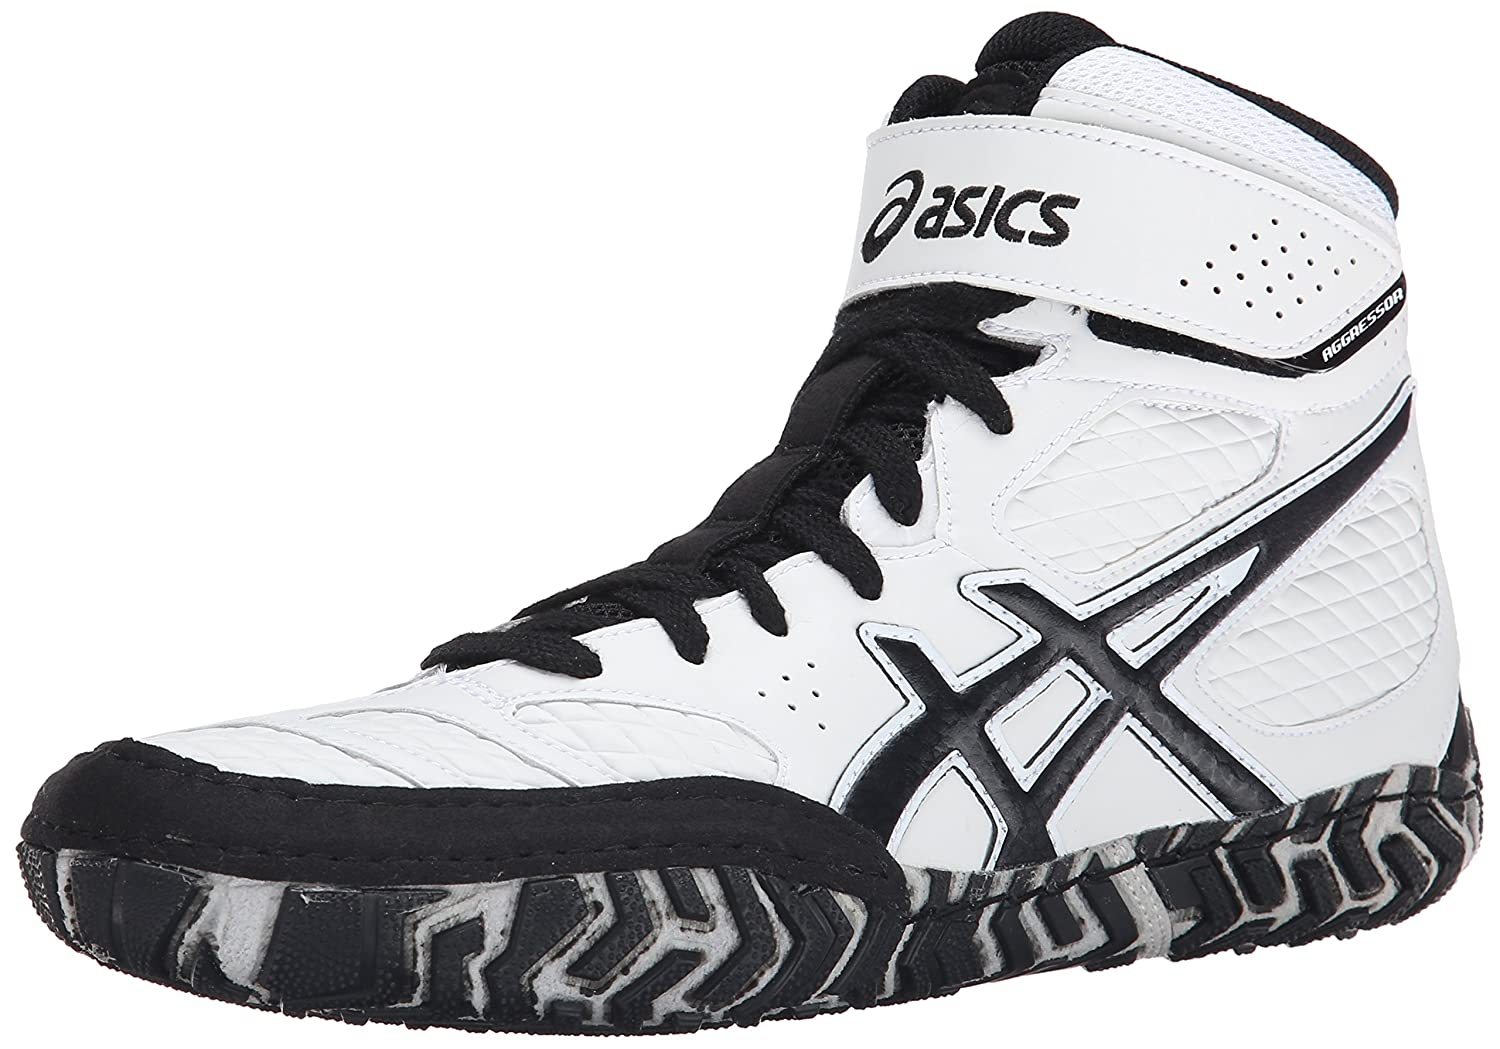 Asics Men S Aggressor 2 Wrestling Shoe White Black 10 5